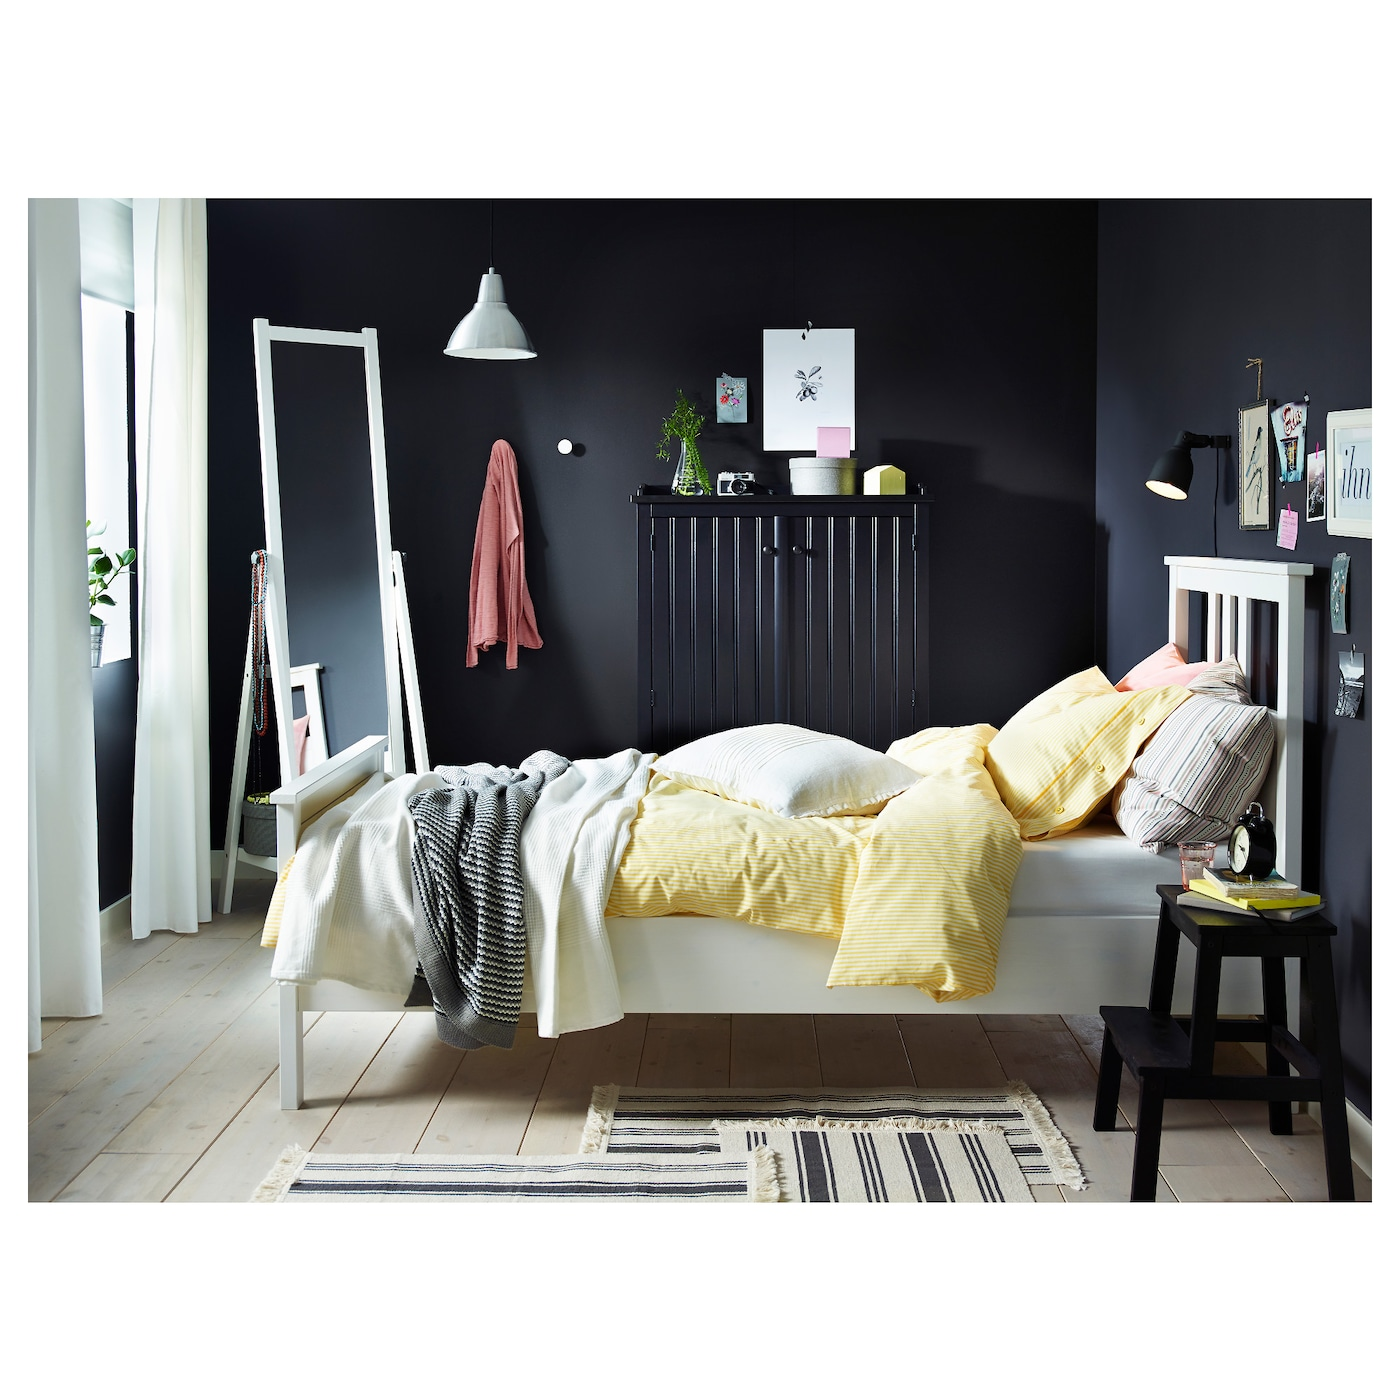 hemnes cadre de lit teint blanc 90x200 cm ikea. Black Bedroom Furniture Sets. Home Design Ideas